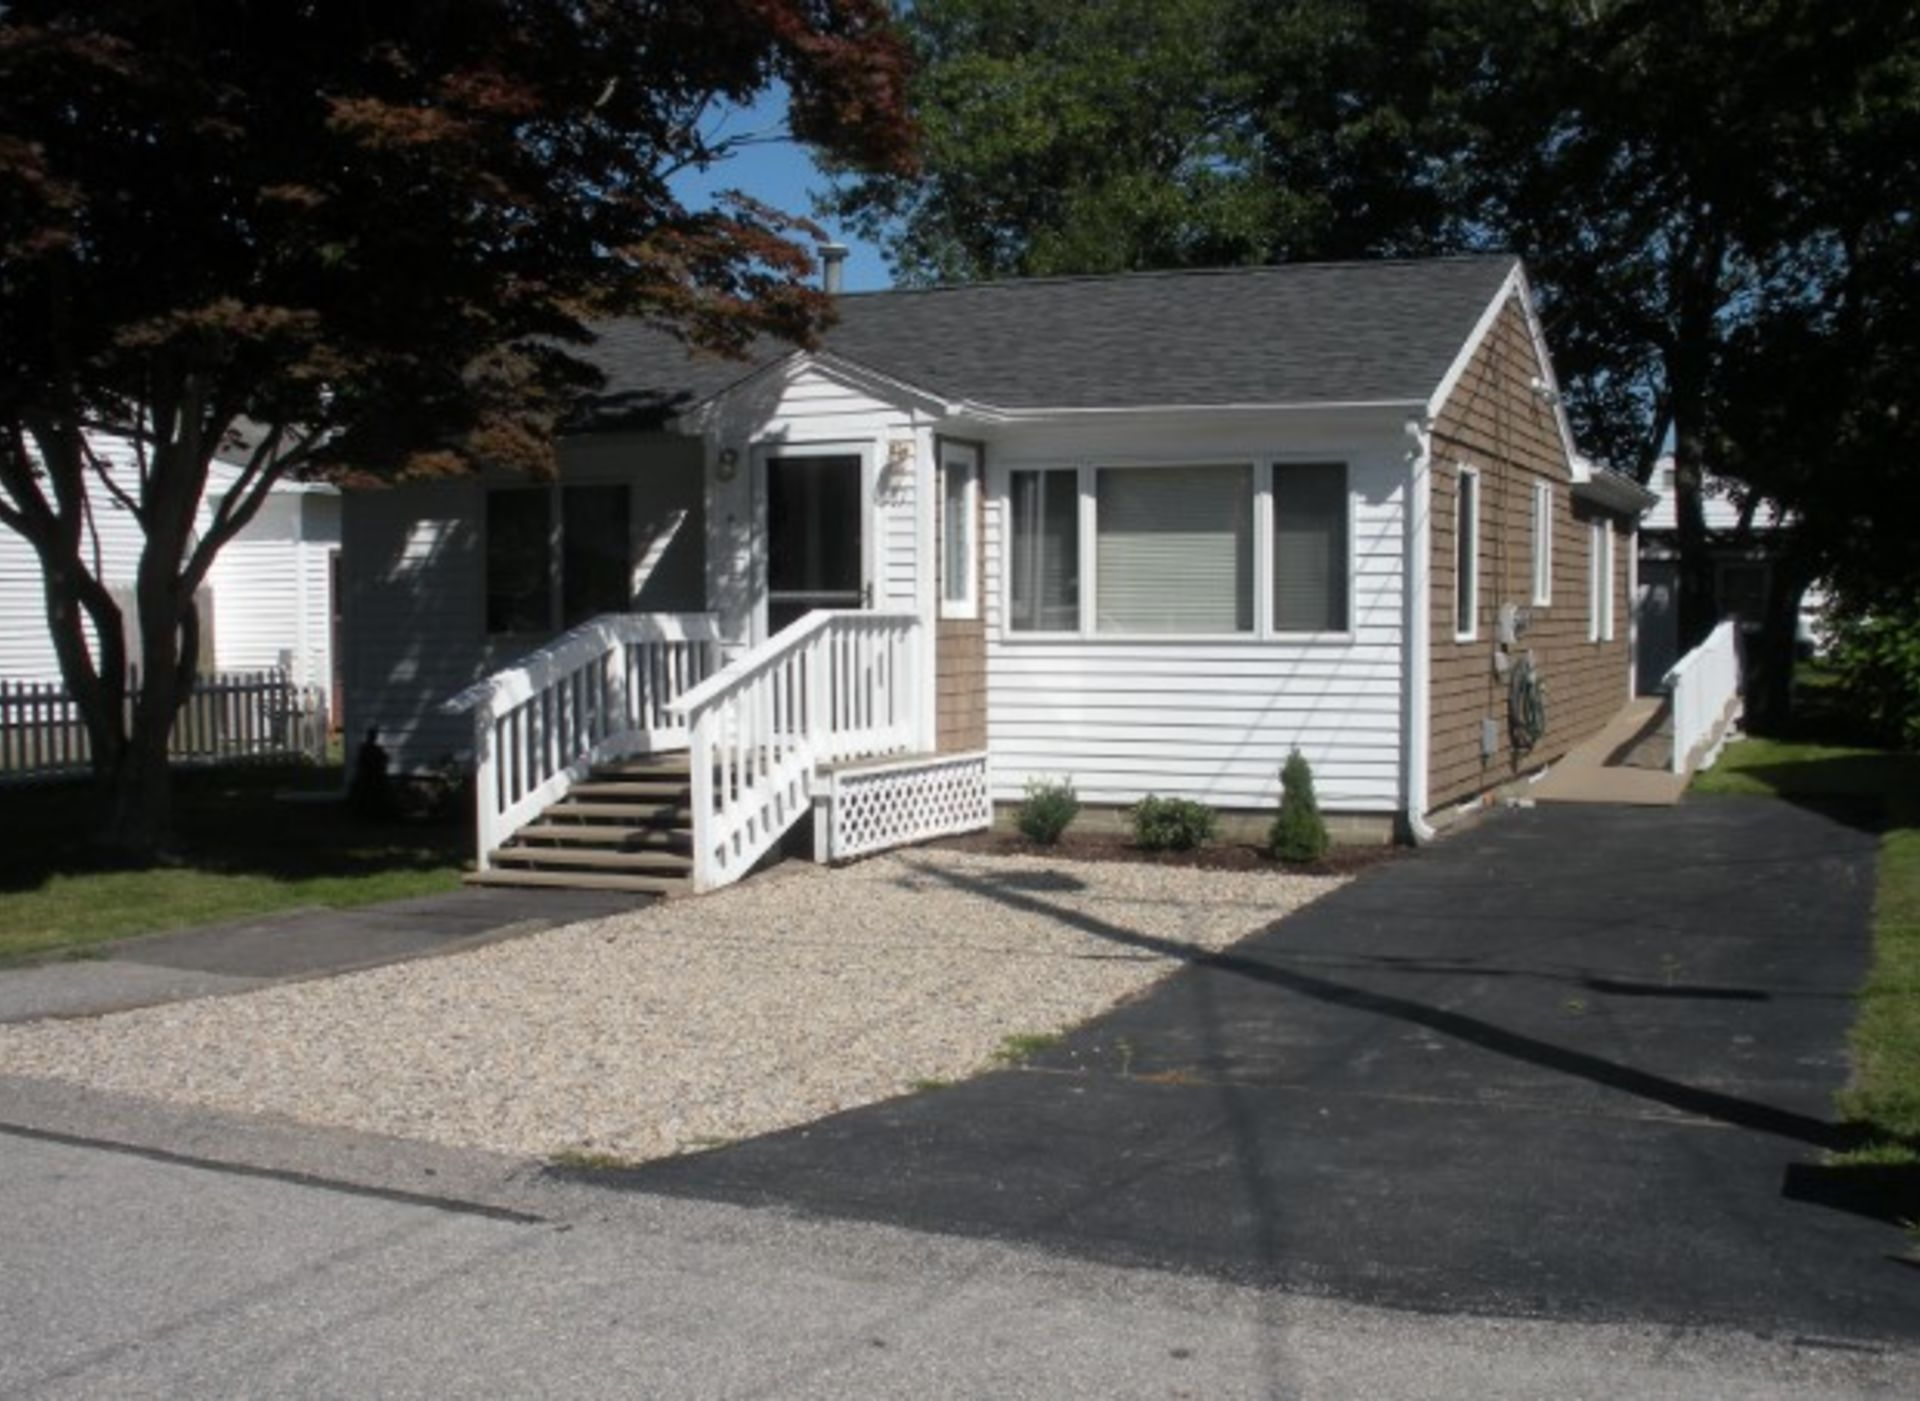 17 ERIE ROAD/POINT JUDITH